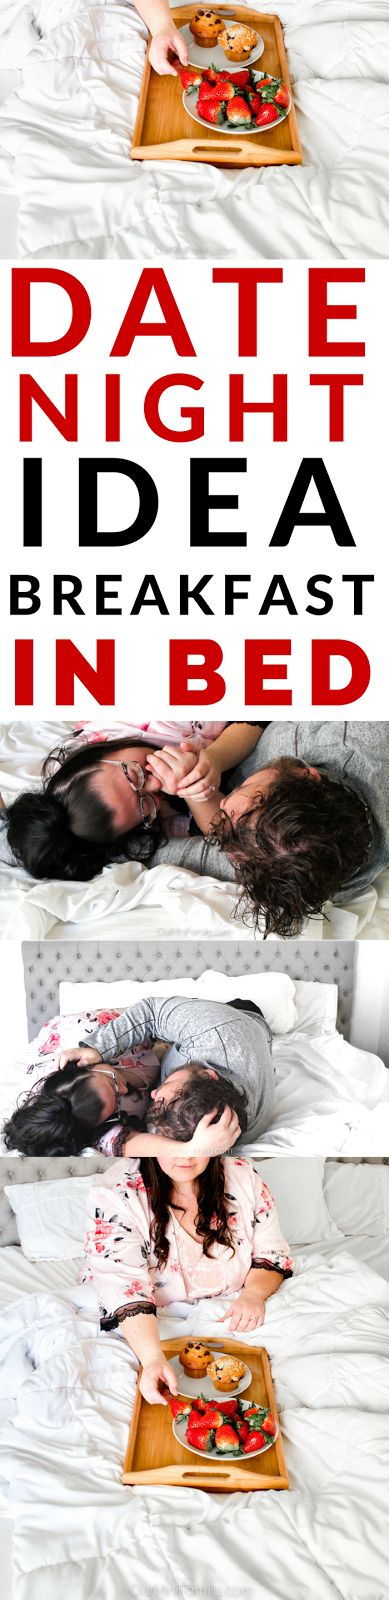 Too cold to go out? Have a date night at home...and in bed together! See our breakfast in bed date night idea! (affiliate)